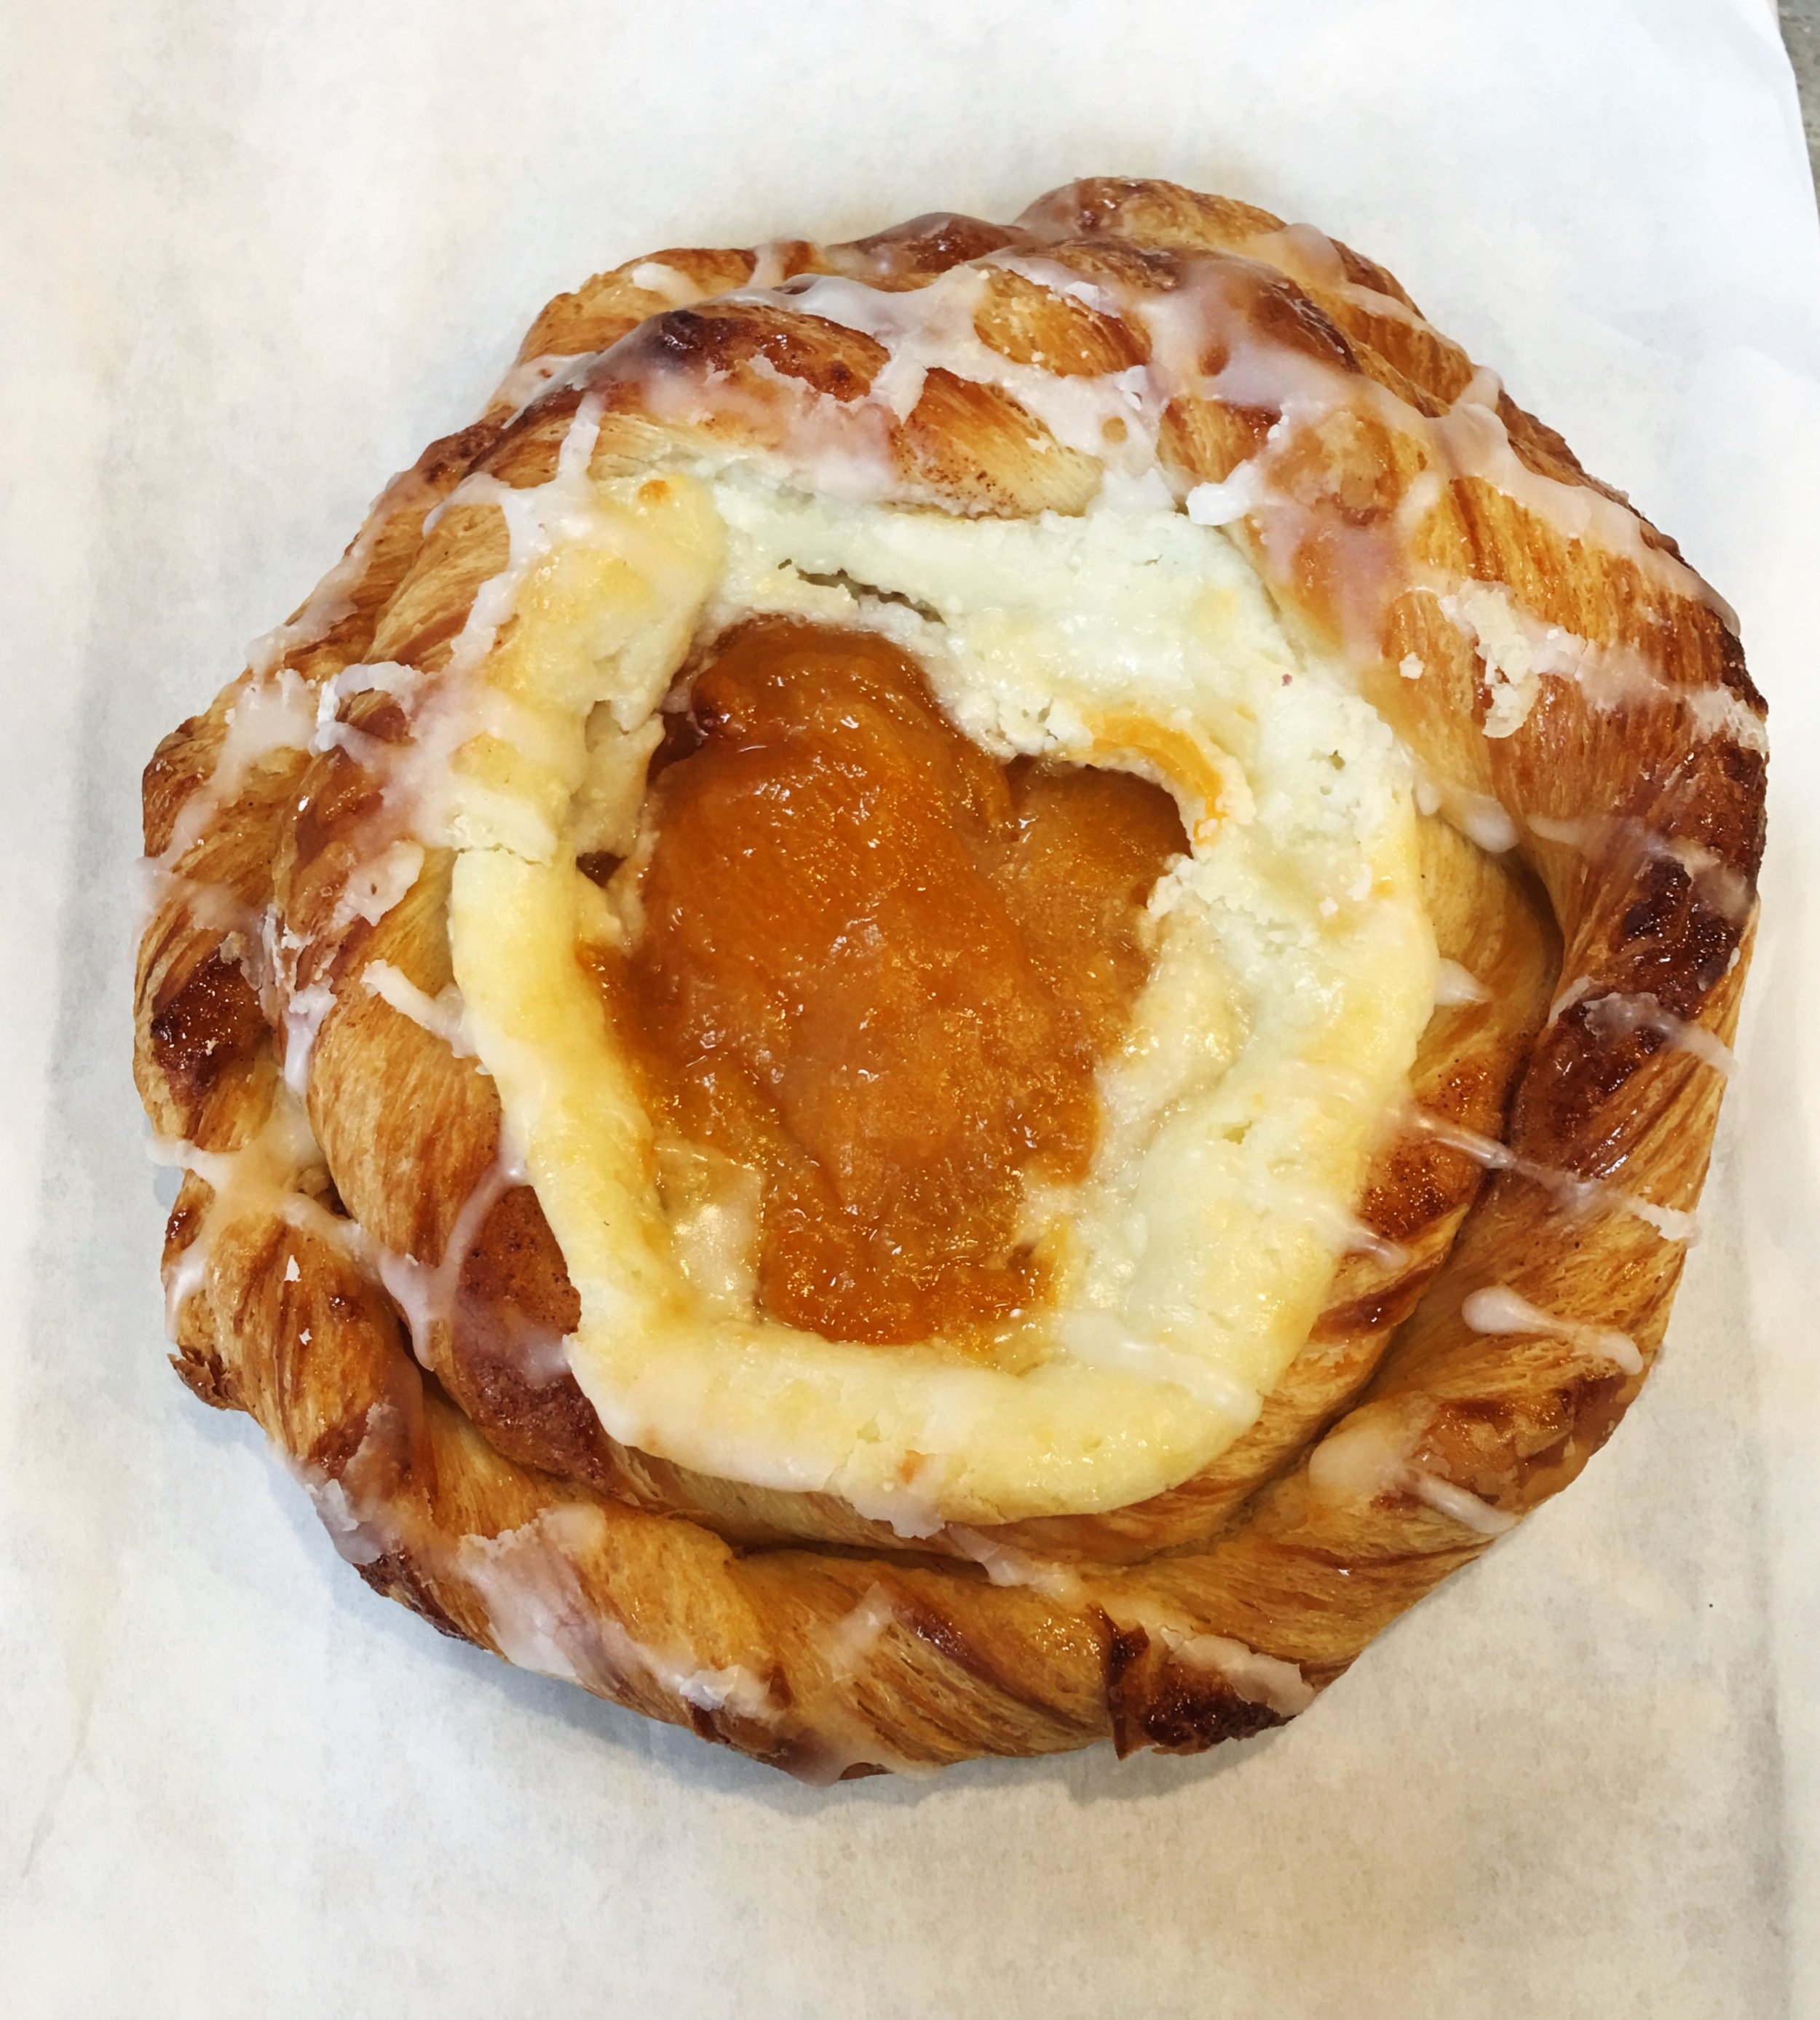 Apricot Danish from The Buttery Cafe in Santa Cruz, California